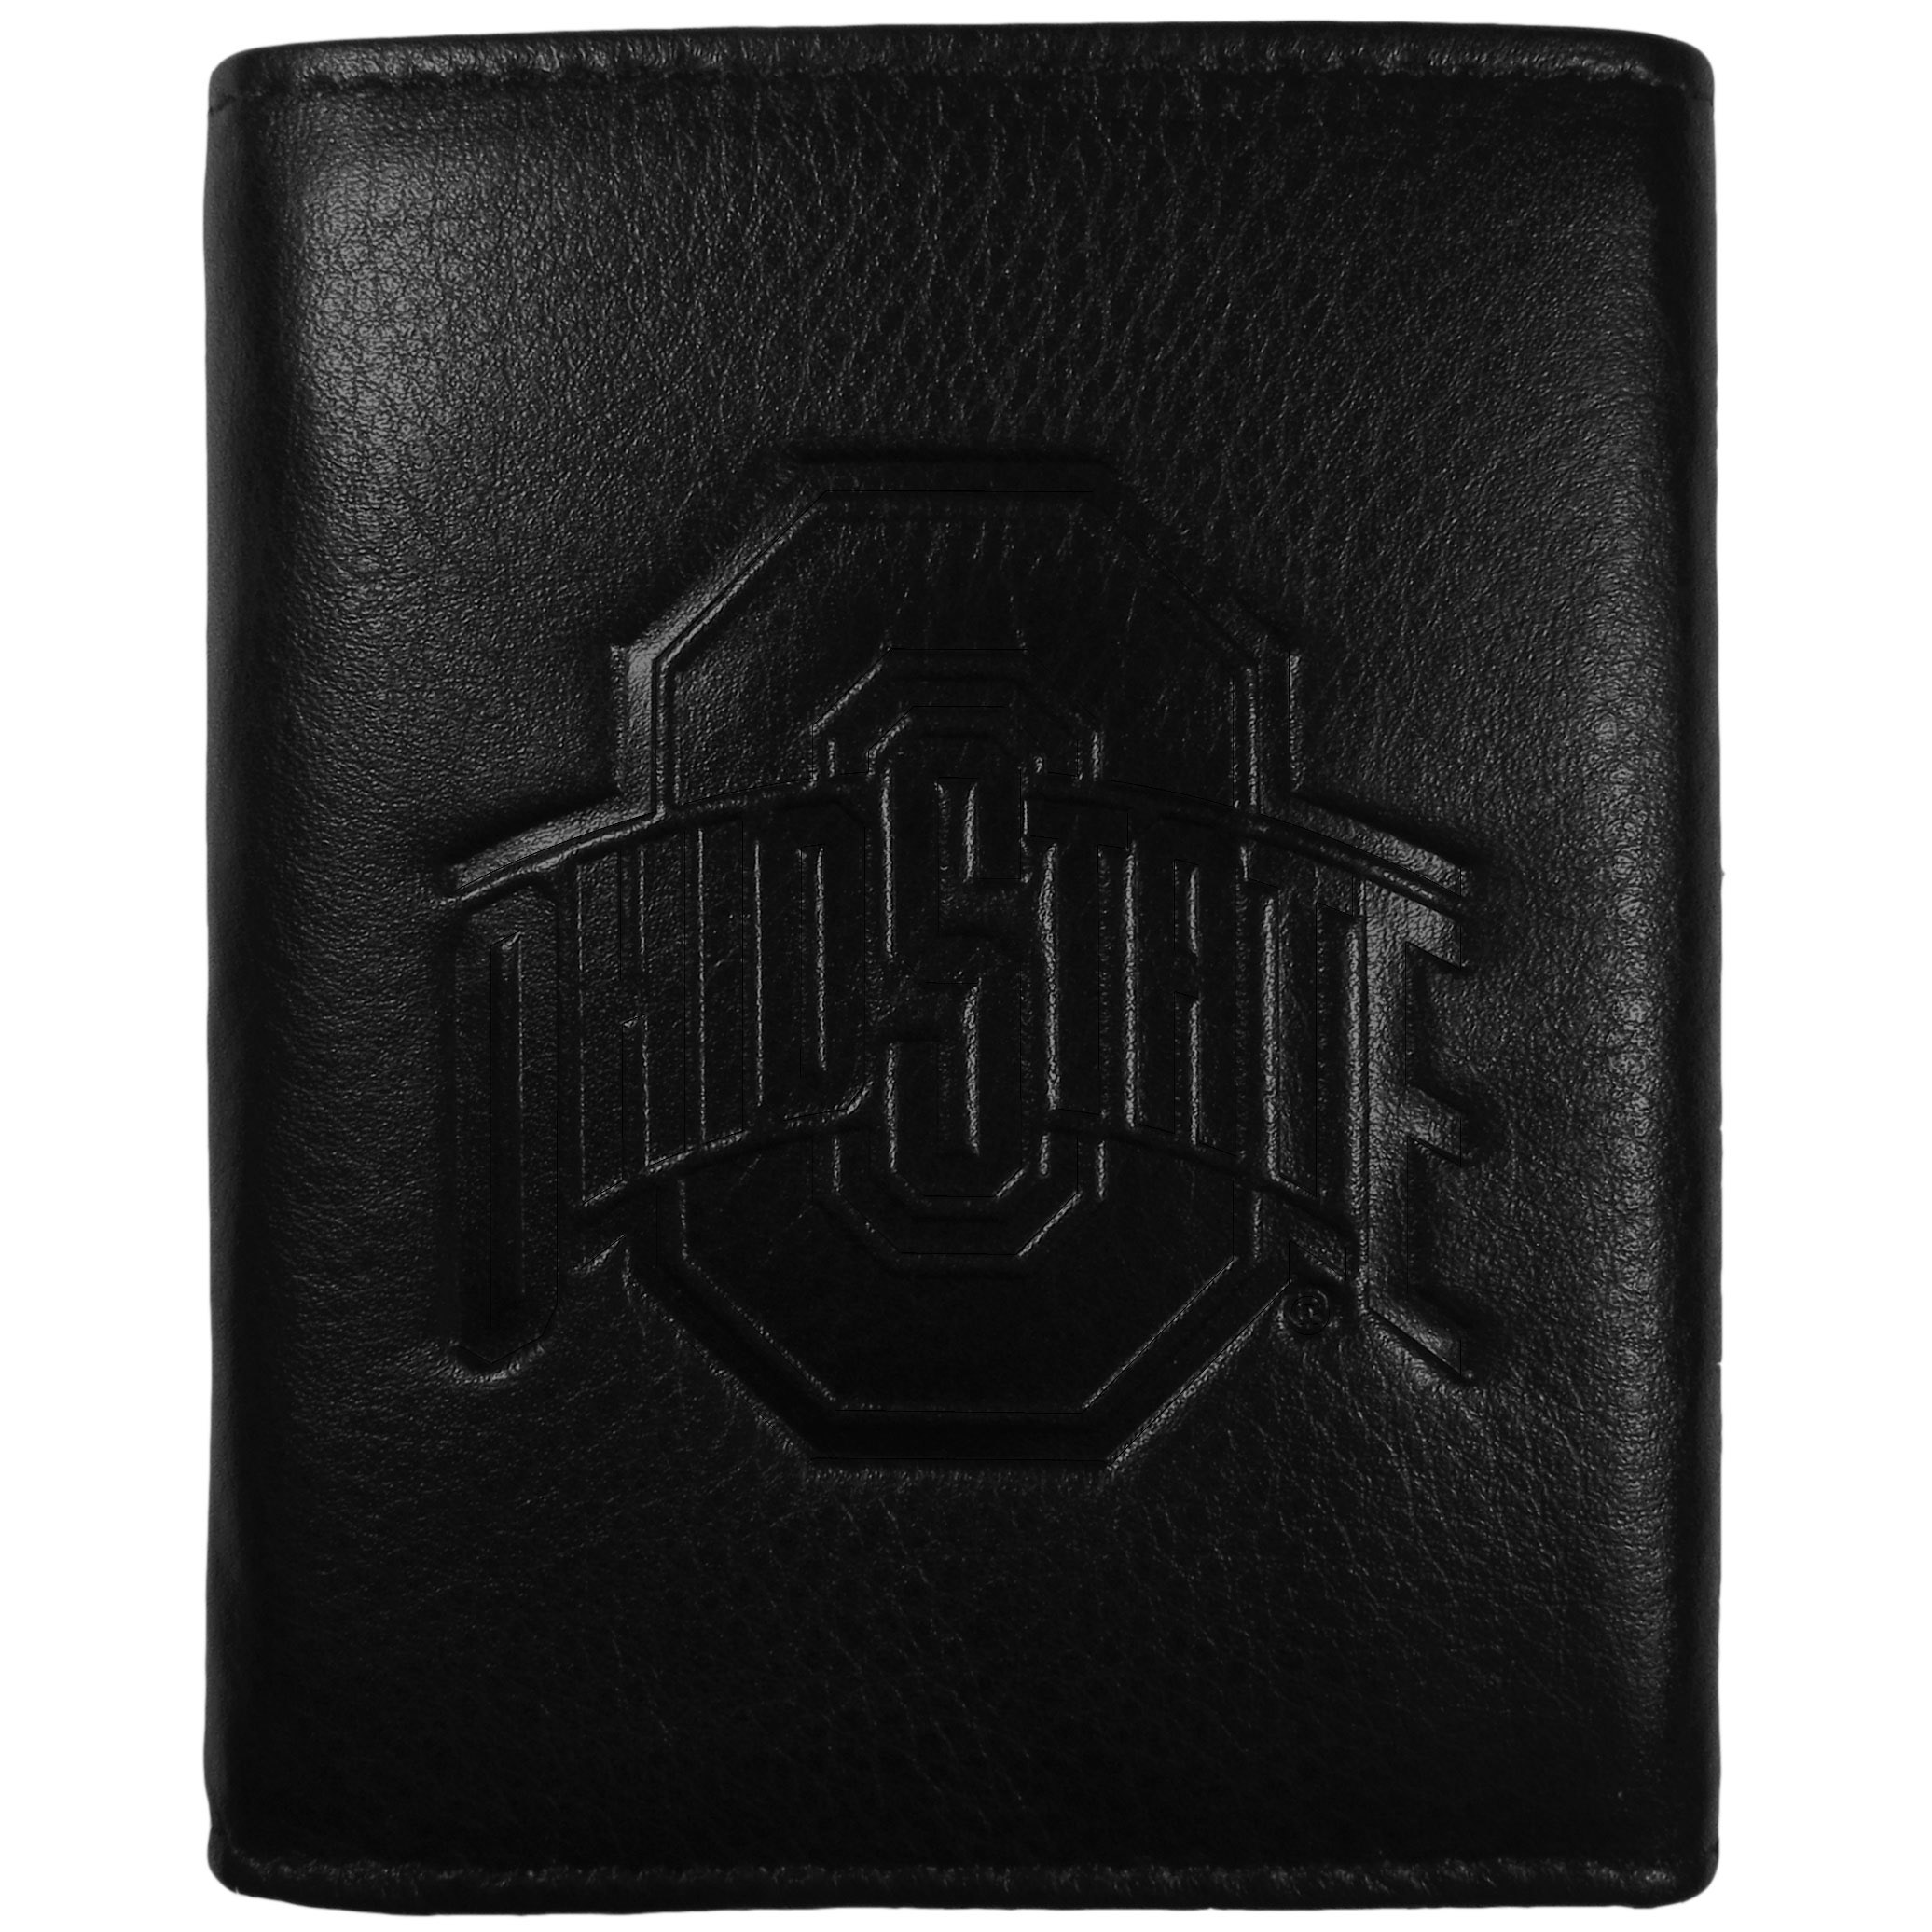 Ohio St. Buckeyes Embossed Leather Tri-fold Wallet - This stylish leather wallet is made of high quality leather with a supple feel and classic look. The front of the tri-fold style wallet has a deeply embossed Ohio St. Buckeyes logo. The billfold is packed with features that will allow to keep organized, lots of credit card slots, windowed ID slot, large pockets for bills and a removable sleeve with extra slots for even more storage. This is a must-have men's fashion accessory that would make any fan very proud to own.